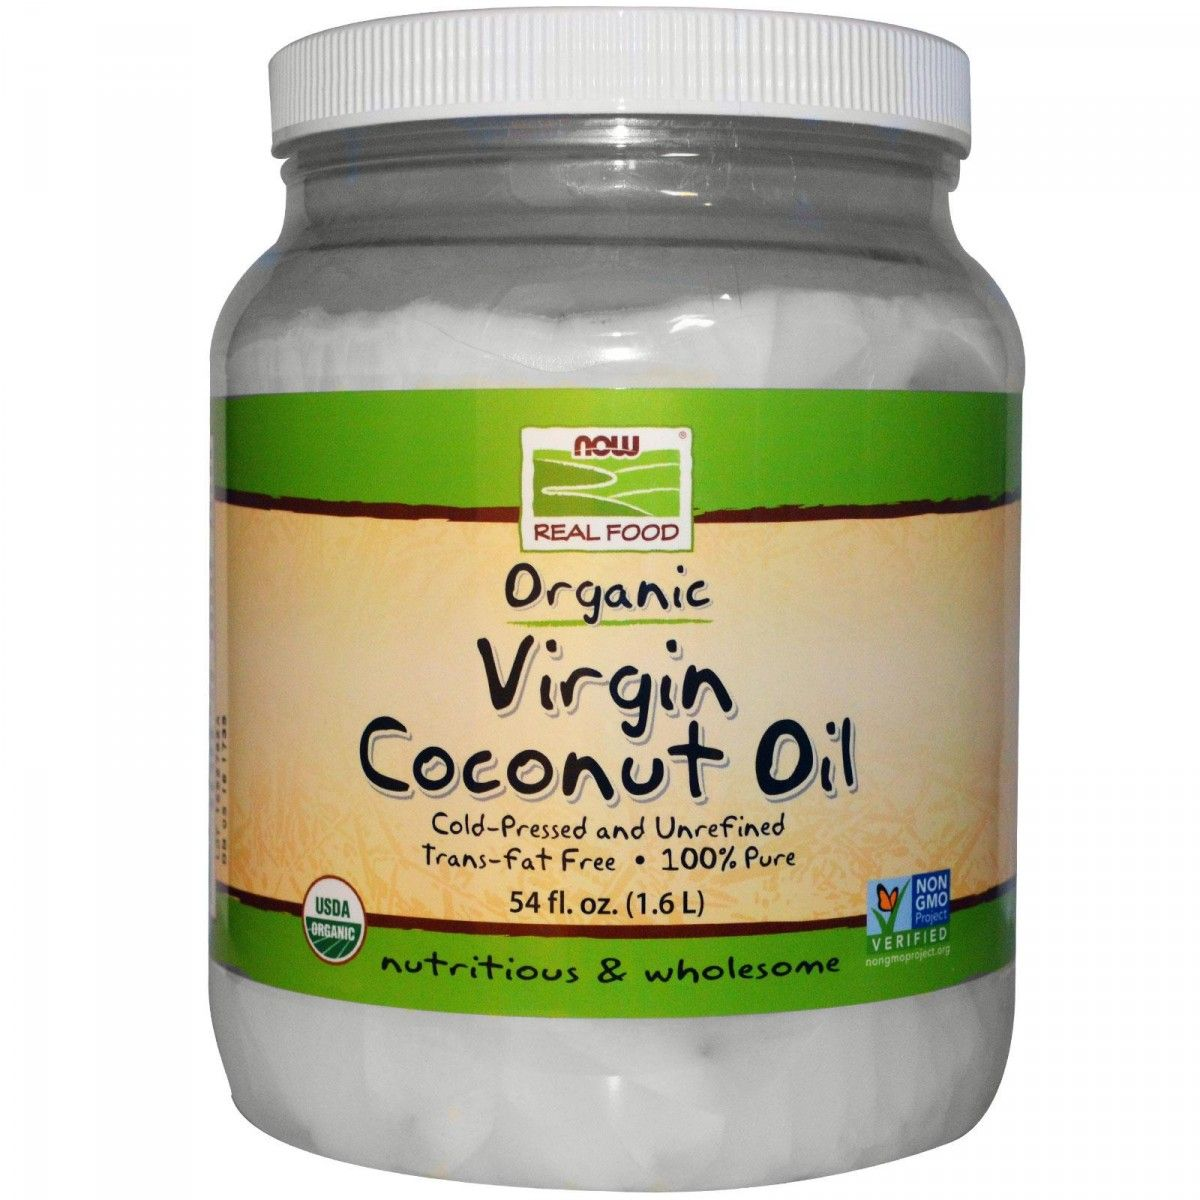 Virgin Coconut Oil, Certified Organic - 20 oz – Her Suppz